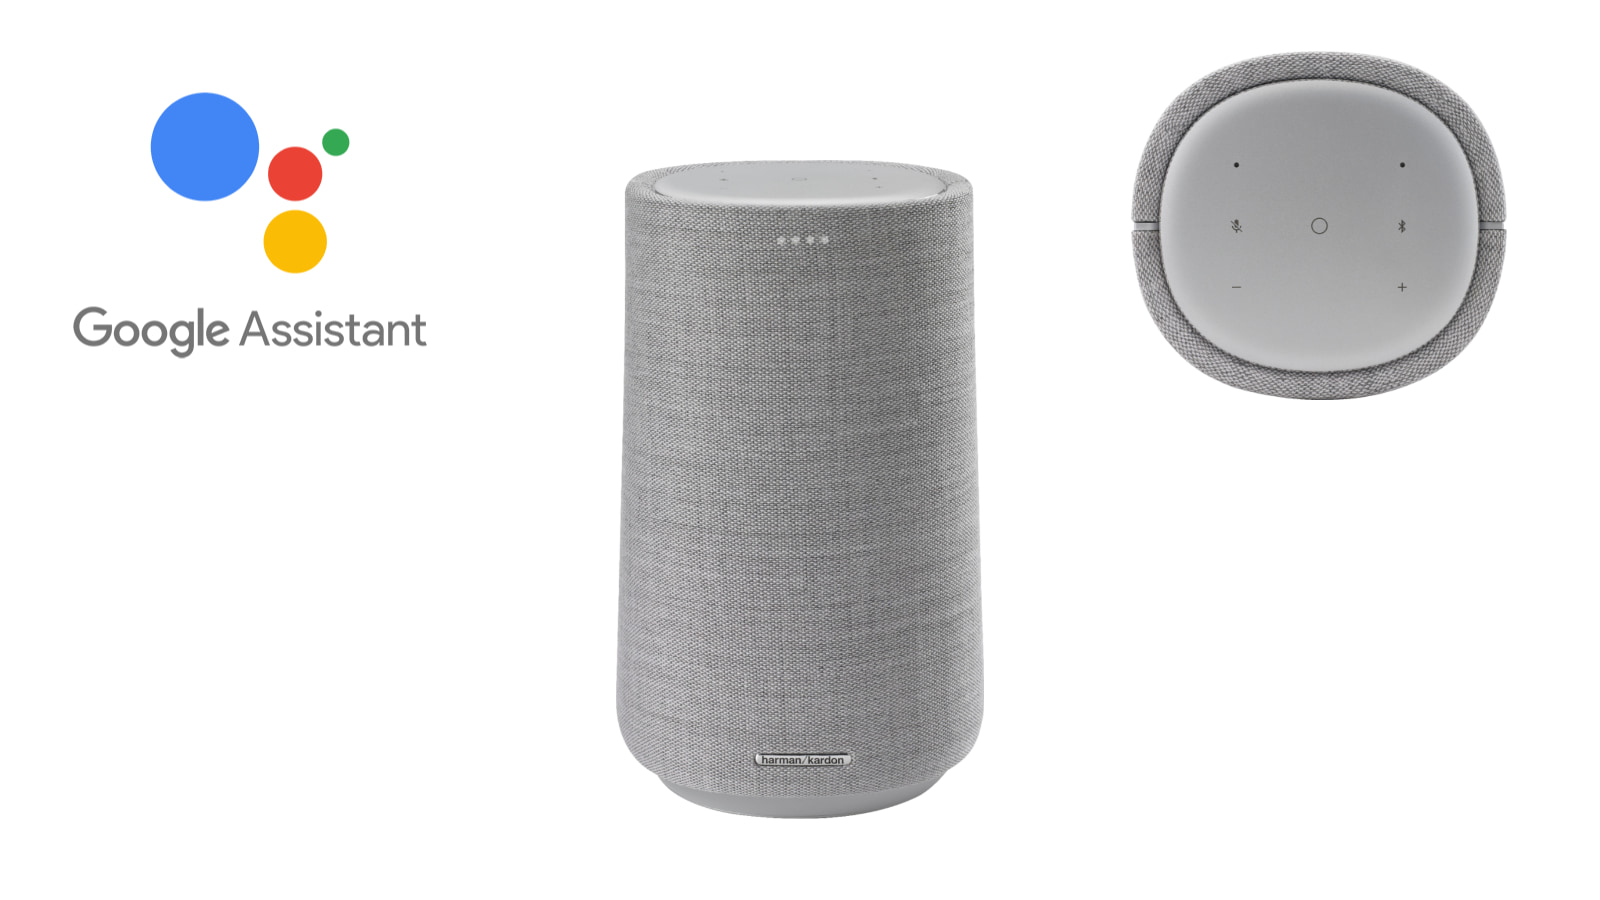 Deal of the Day: $250 off this premium Google Assistant smart speaker